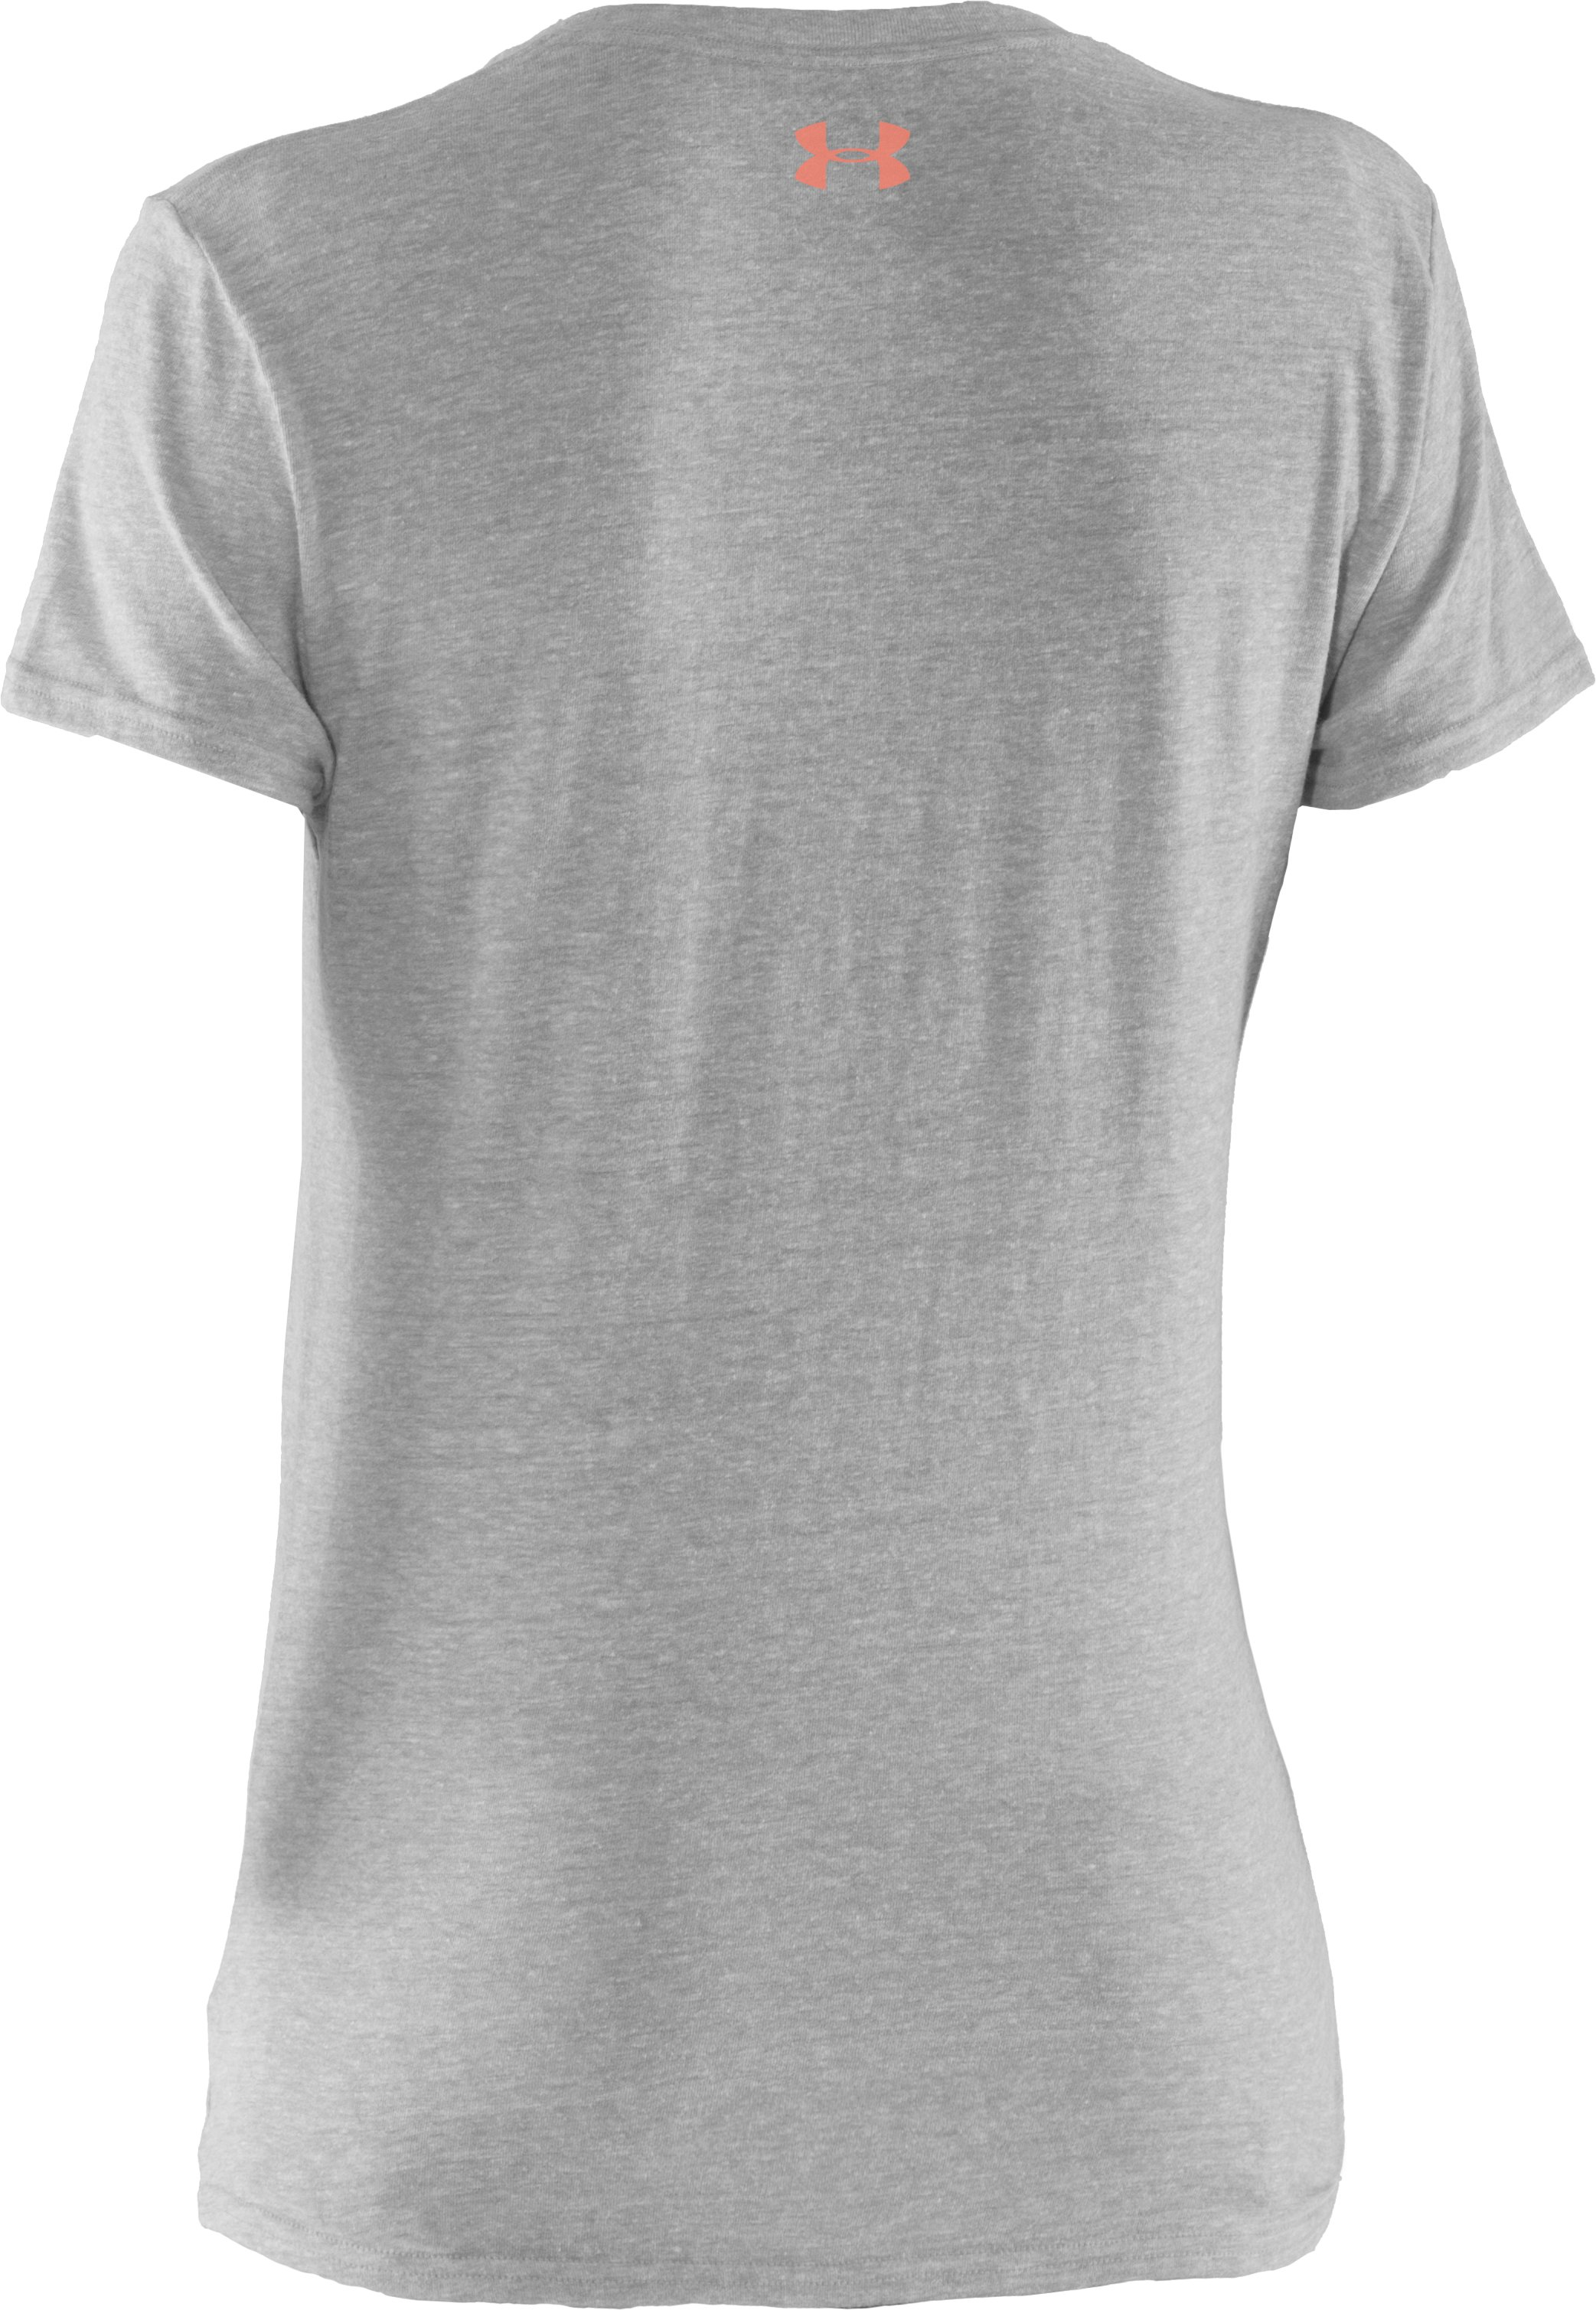 Women's UA Wish Will Graphic T-Shirt, True Gray Heather, undefined